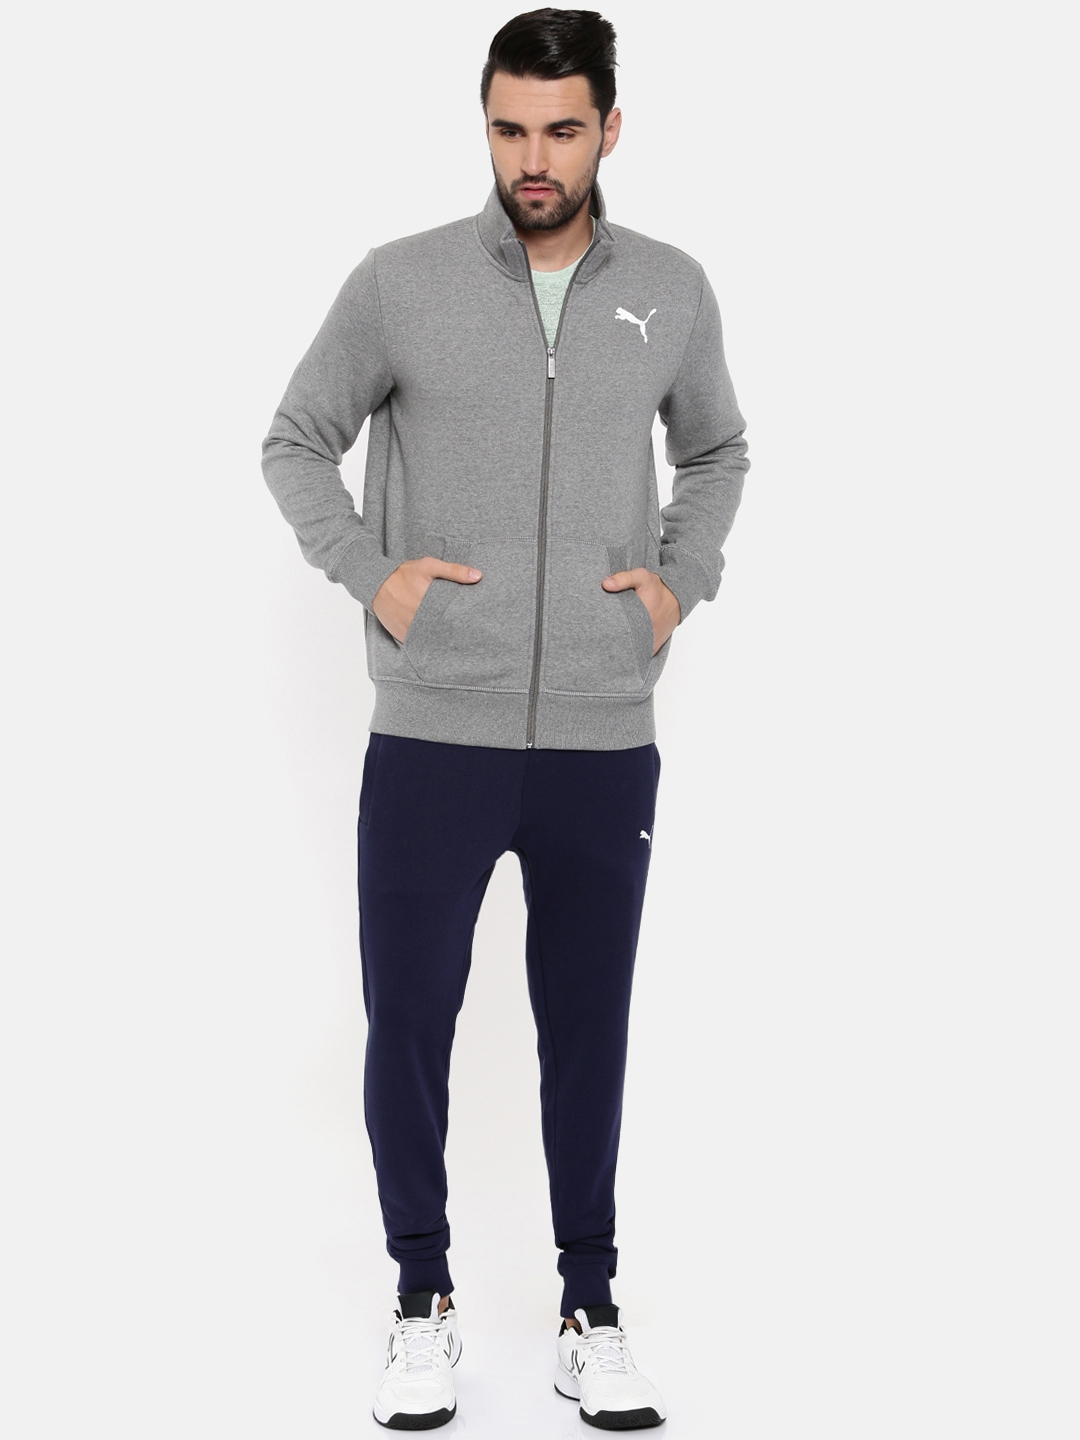 624d5e5fd467 Buy Puma Men Grey   Blue Style Good Sweat Tracksuit - Tracksuits for ...